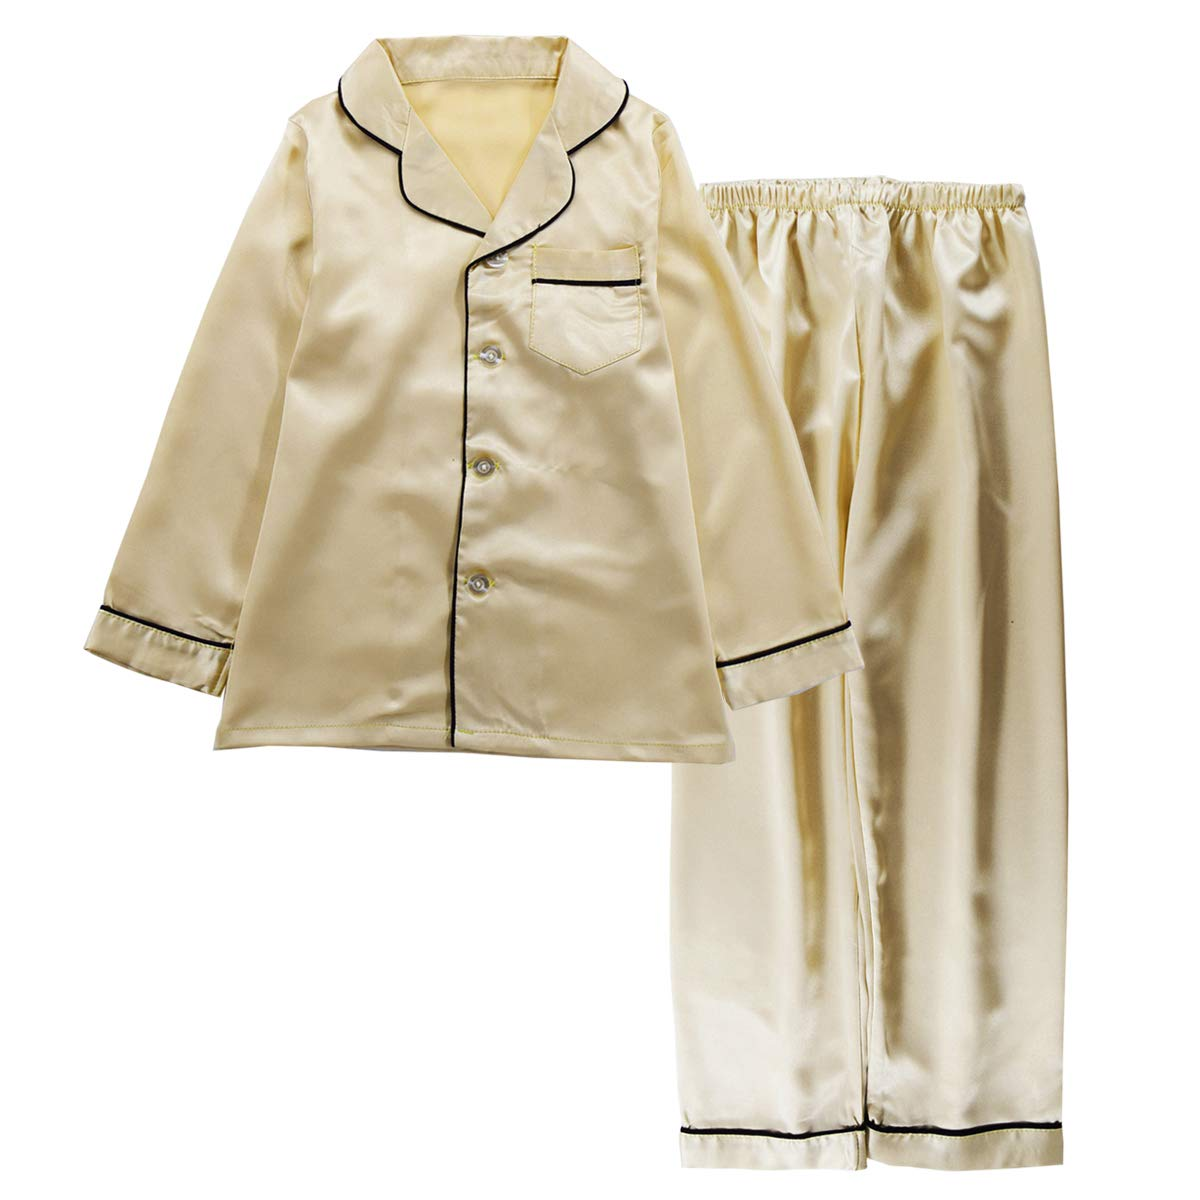 JOYTTON Kids Satin Pajamas Set PJS Long Sleeve Button-Down Sleepwear Loungewear